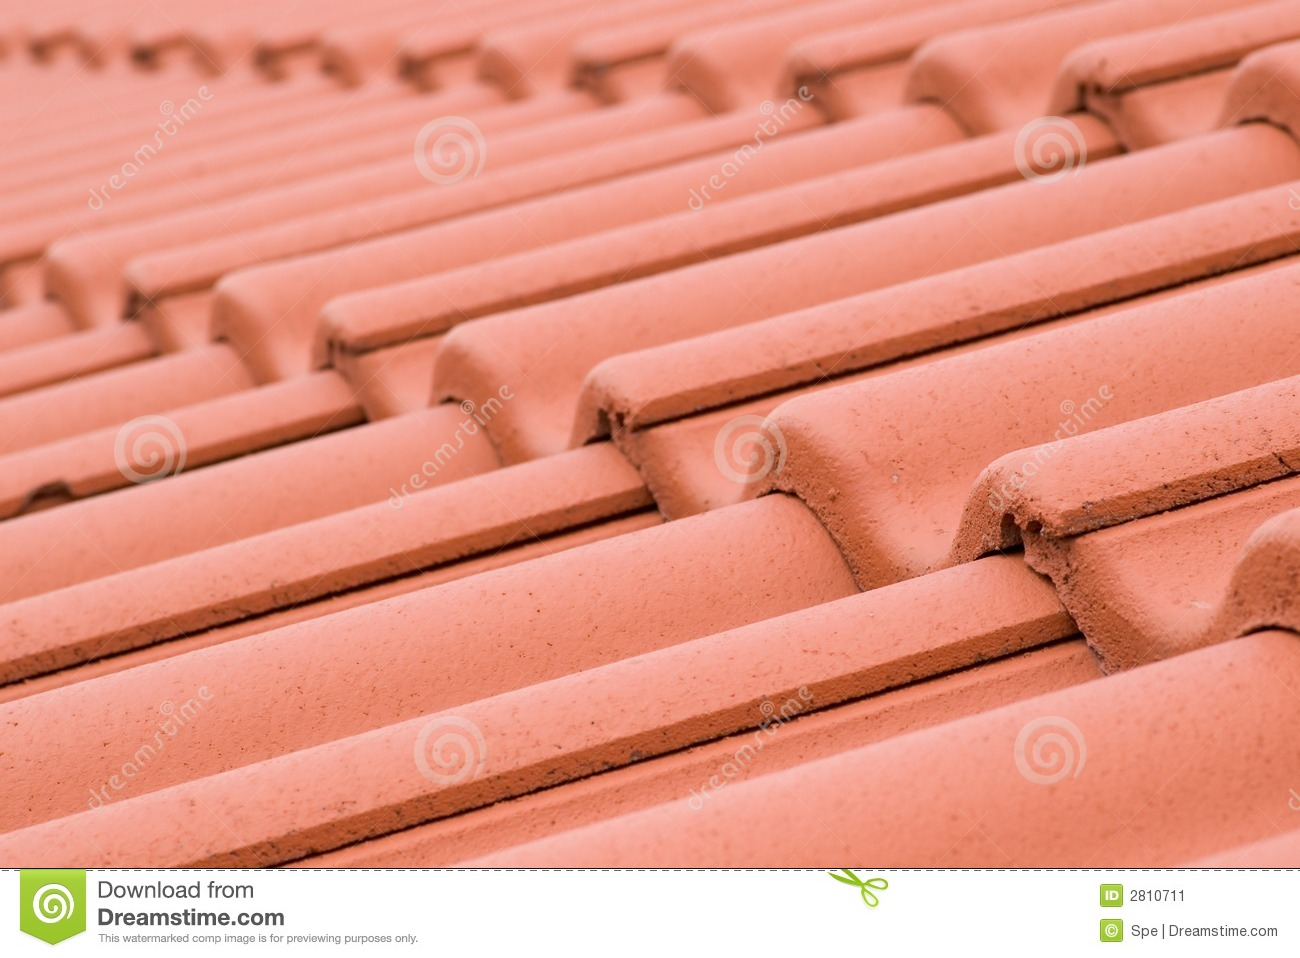 Ceramic Roofing Tiles Stock Image Image Of Building Effect 2810711